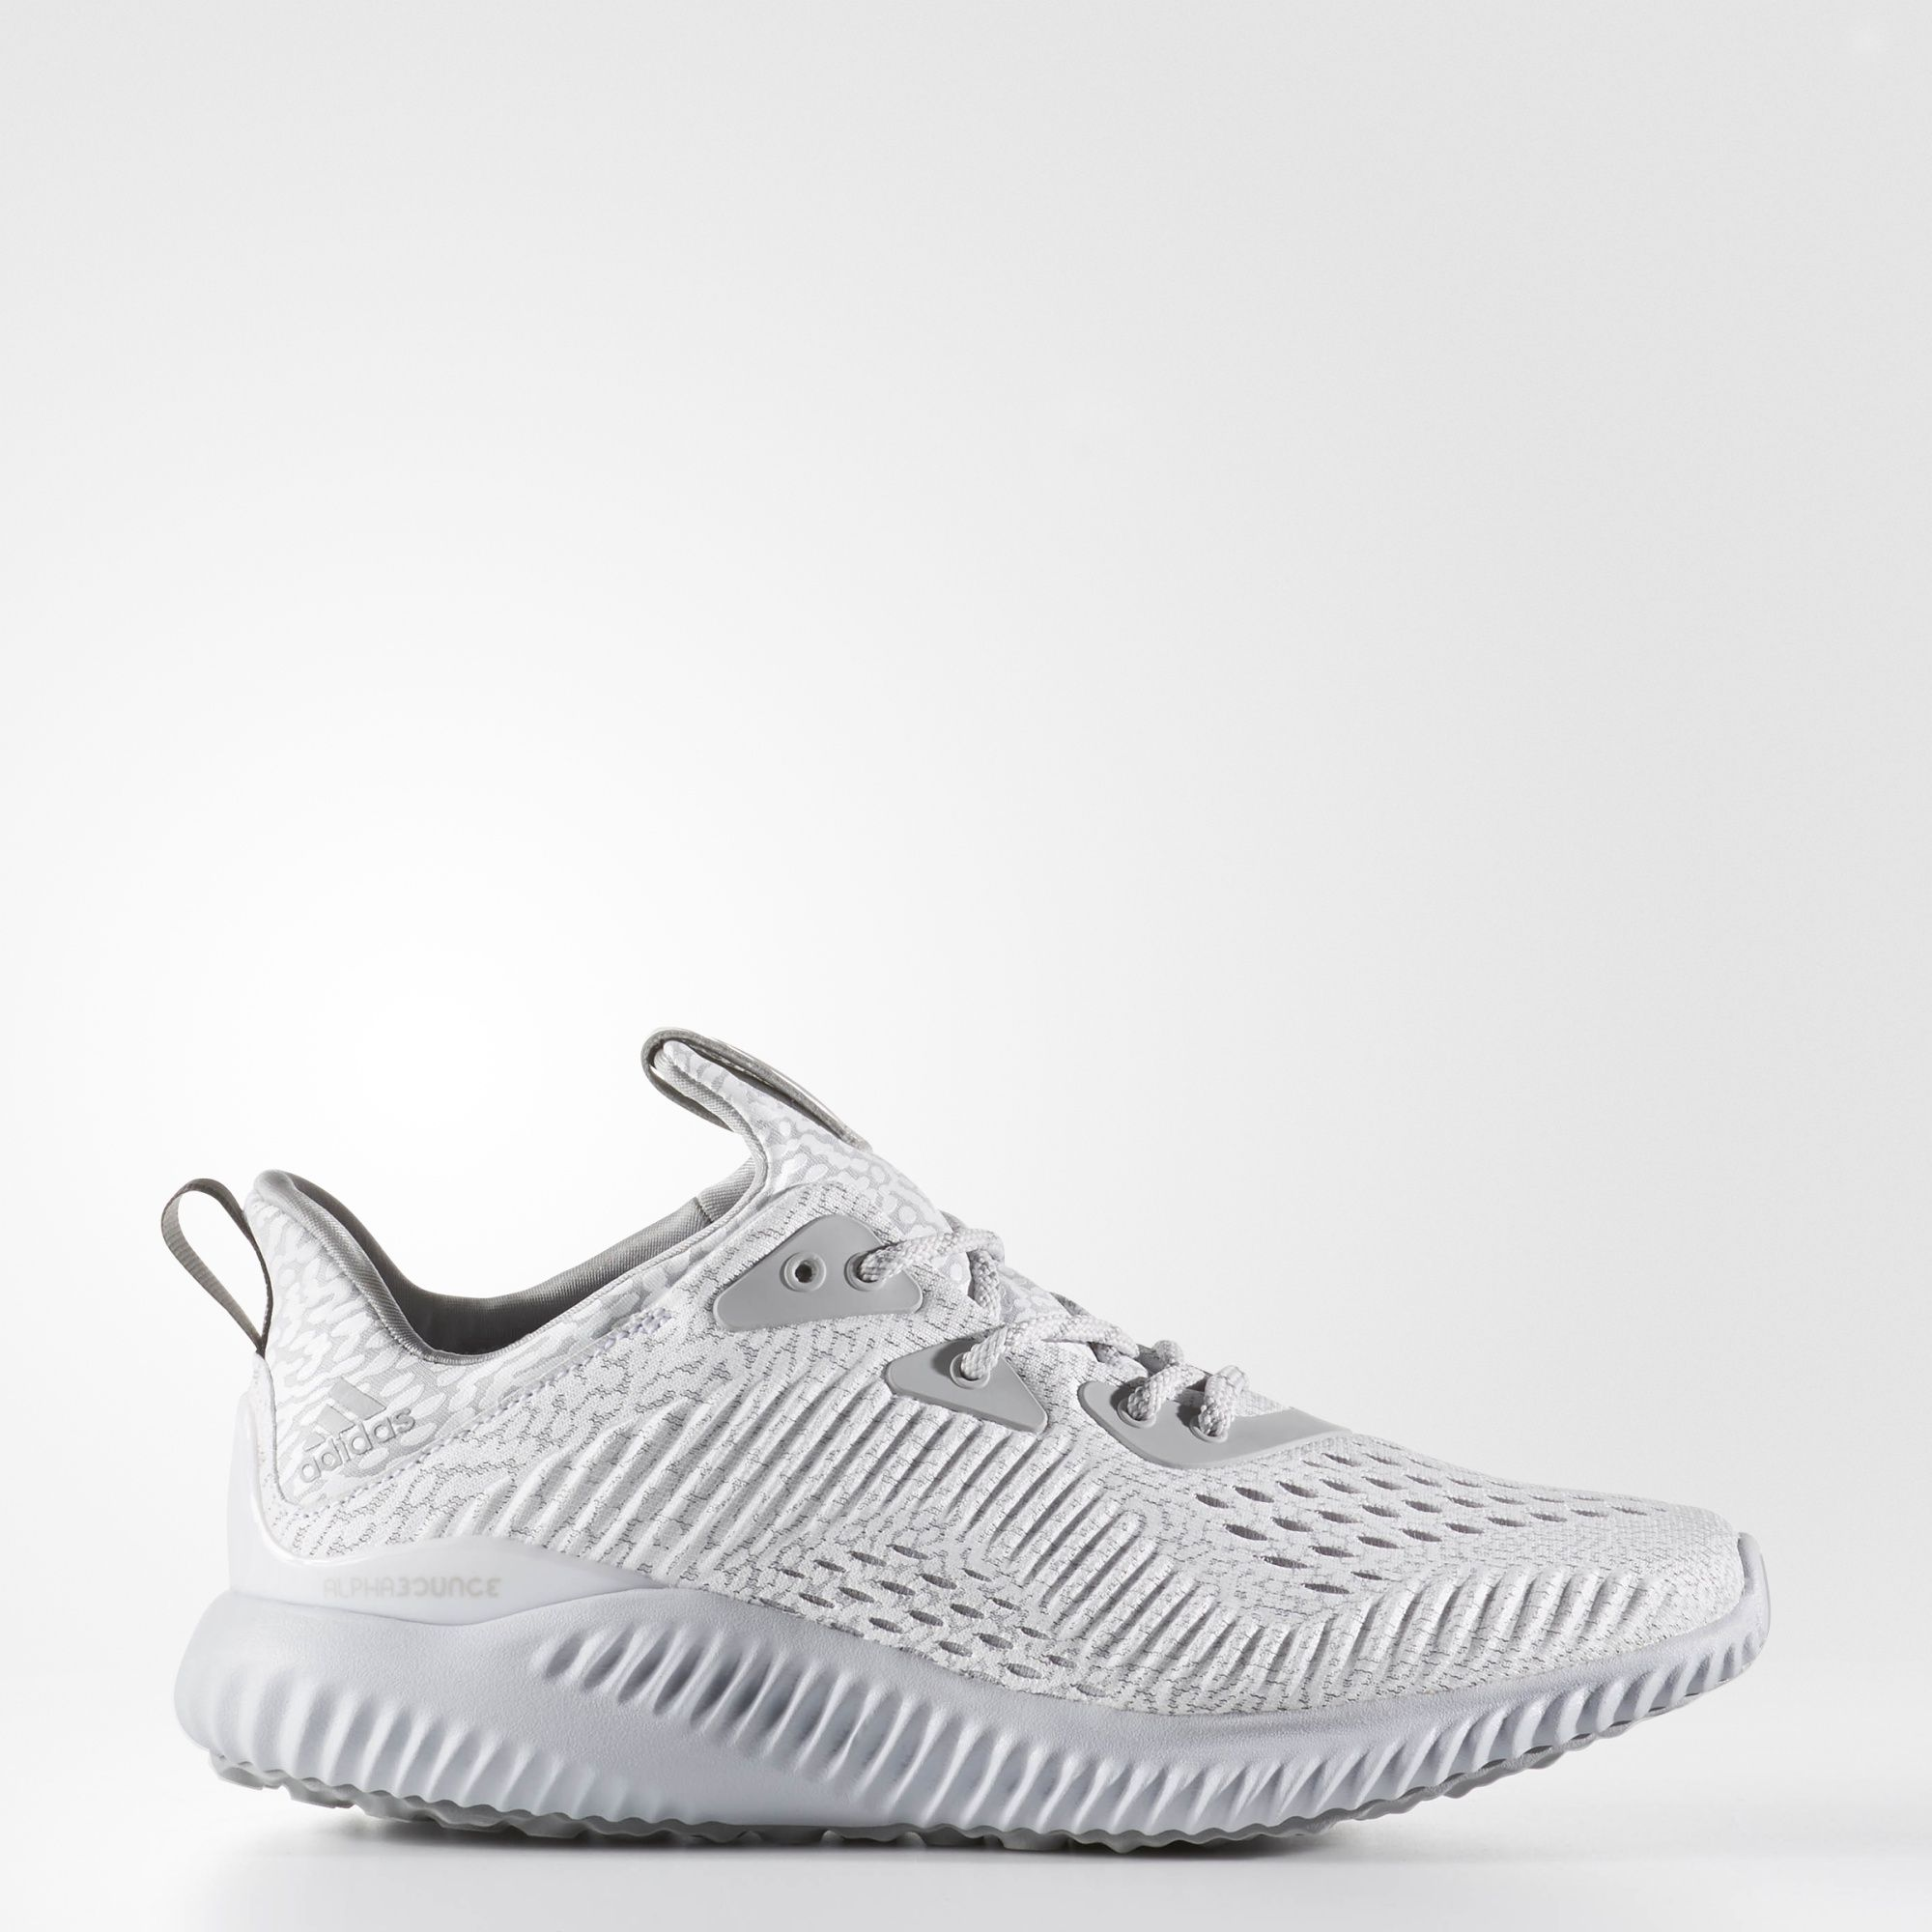 ba14f41d1e Alphabounce AMS Shoes | Fitness Gear and Sneakers | Adidas running ...